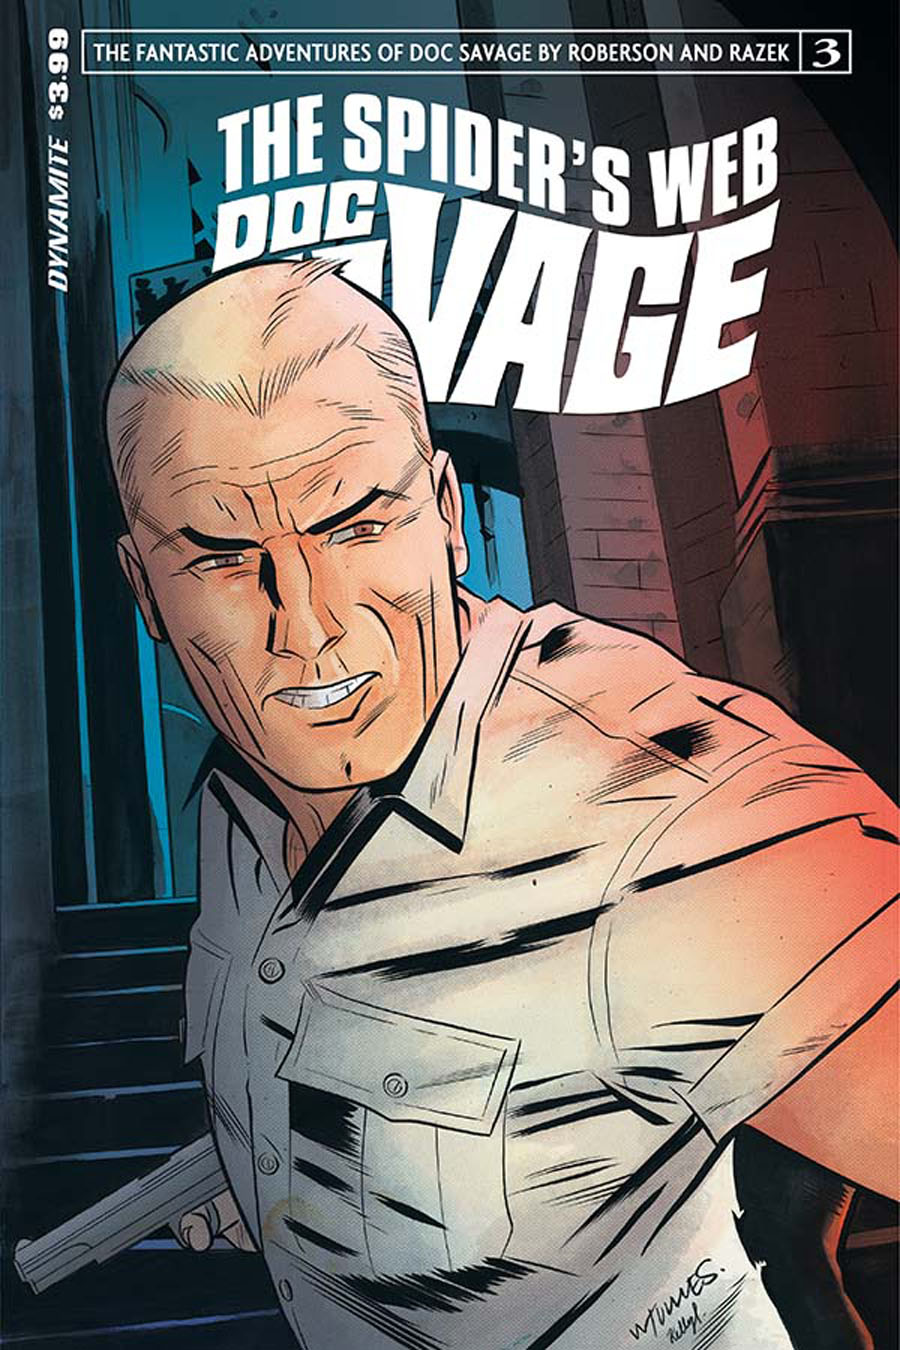 Doc Savage Spiders Web #3 Cover A Regular Wilfredo Torres Cover